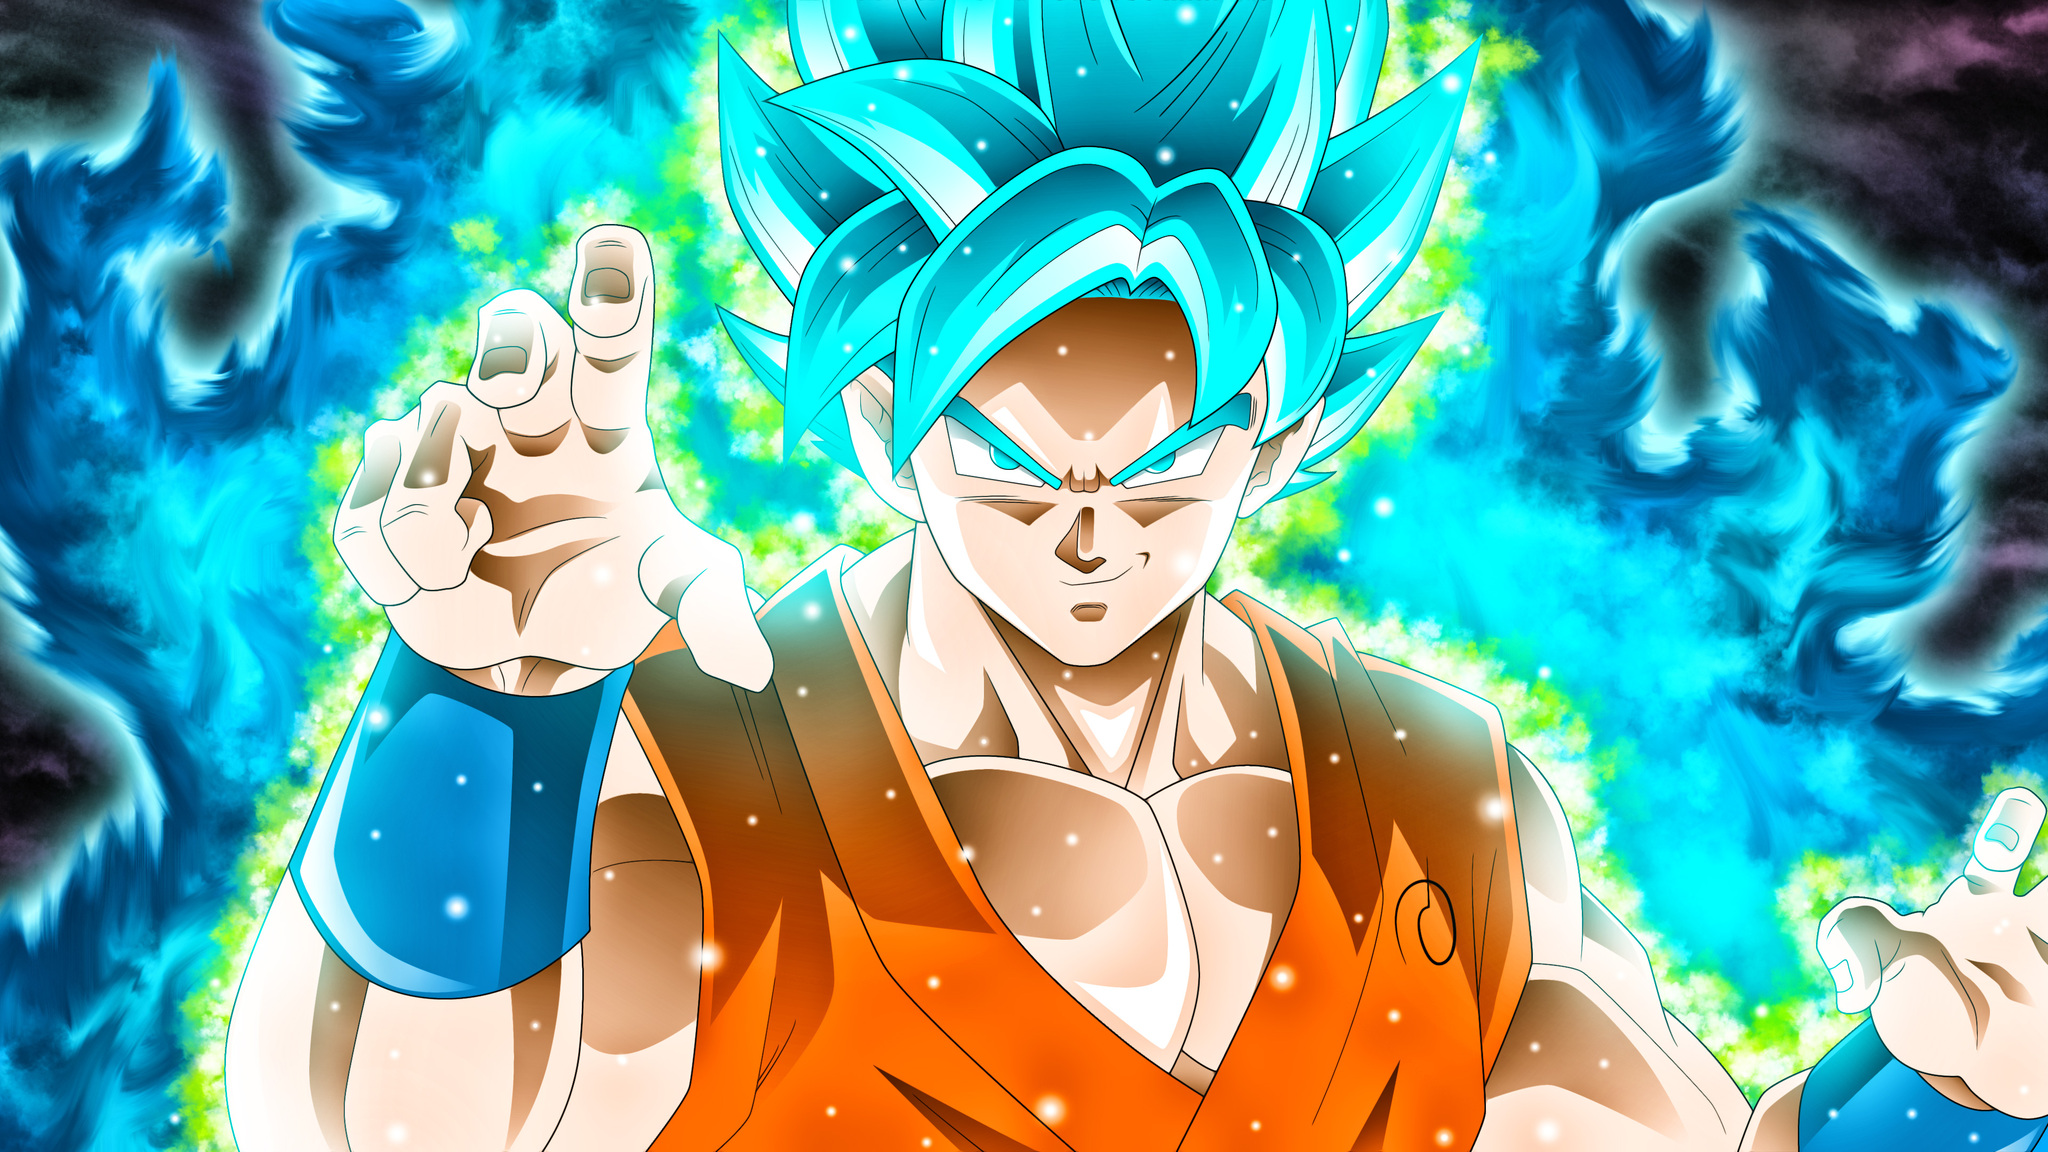 2048x1152 Goku Dragon Ball Super 2048x1152 Resolution HD